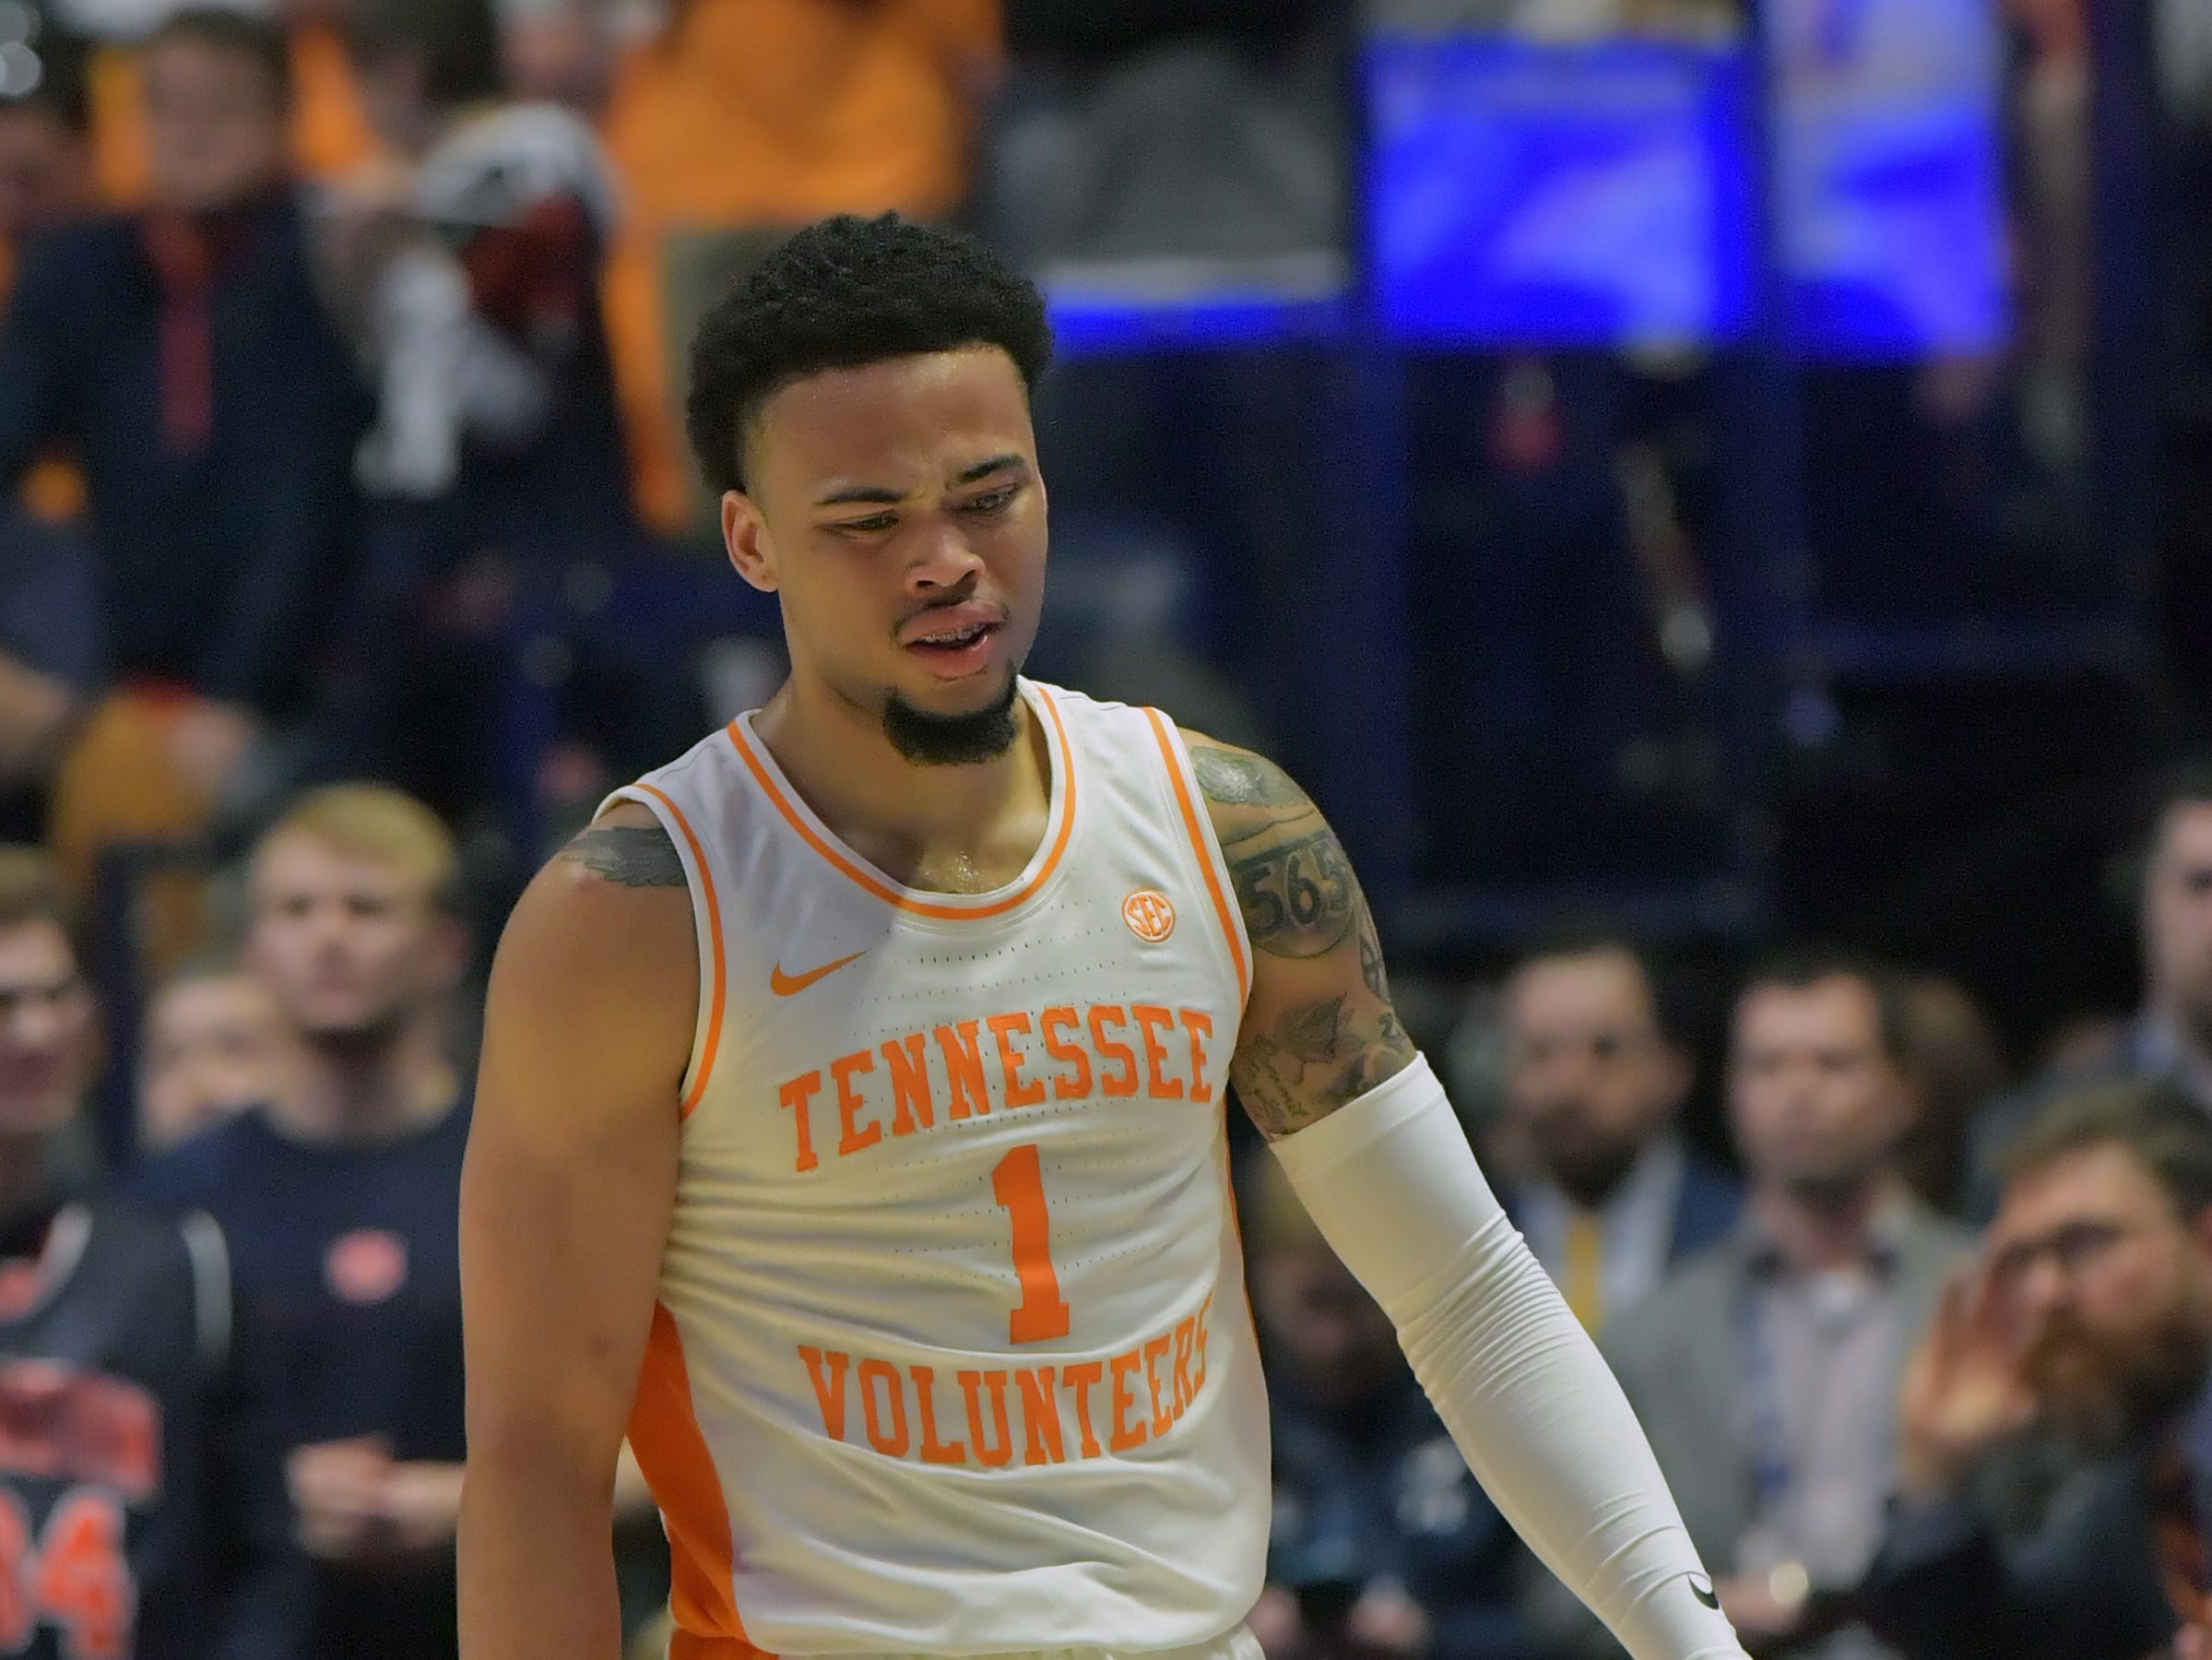 Mar 17, 2019; Nashville, TN, USA; Tennessee Volunteers guard Lamonte Turner (1) reacts after making a foul against the Auburn Tigers during the second half of the championship game in the SEC conference tournament at Bridgestone Arena. Auburn won 84-64. Mandatory Credit: Jim Brown-USA TODAY Sports